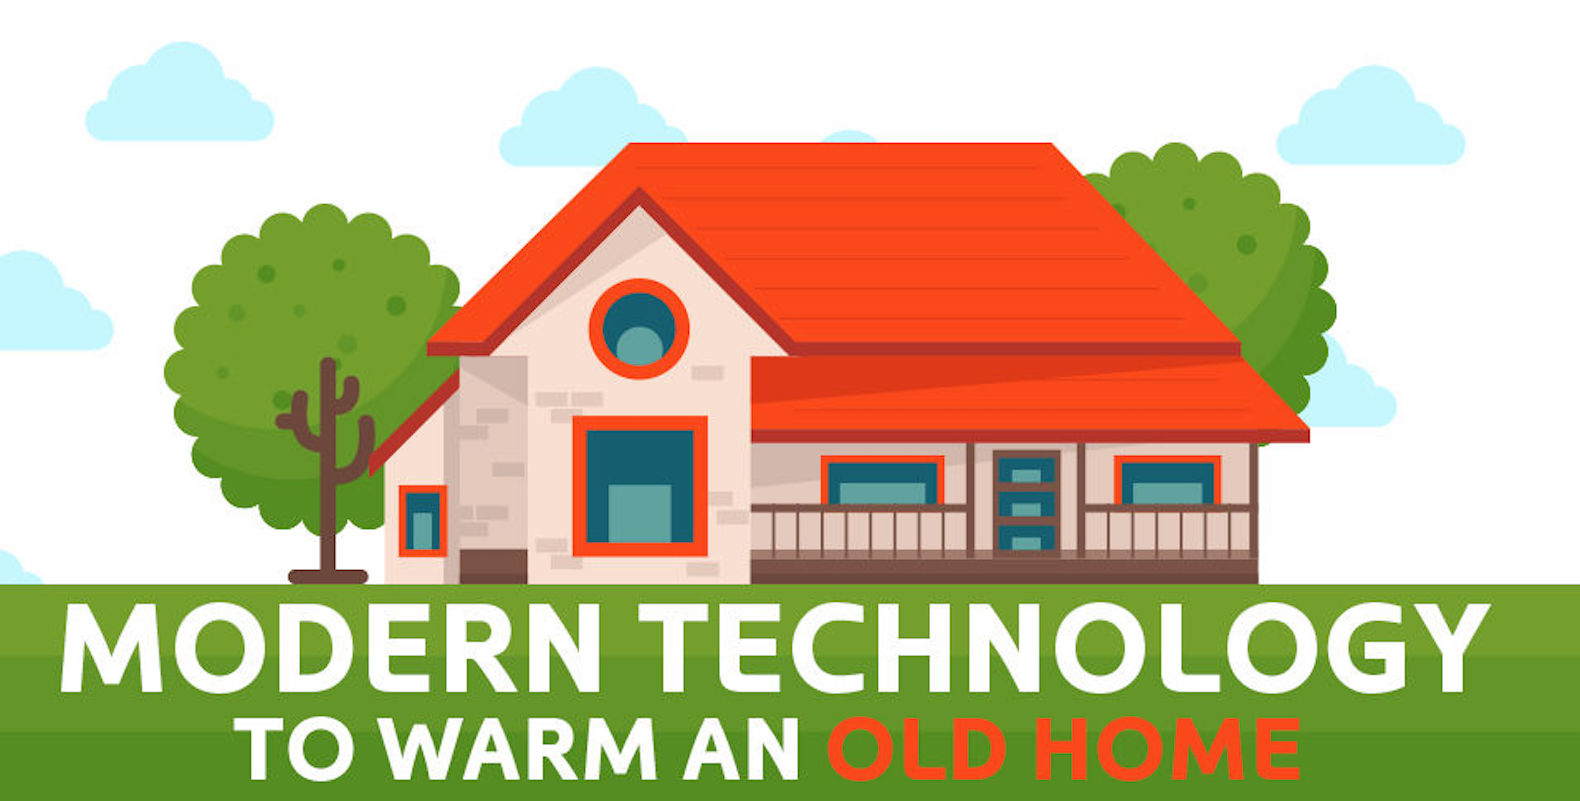 How To Keep An Old Home Warm With Modern Technology